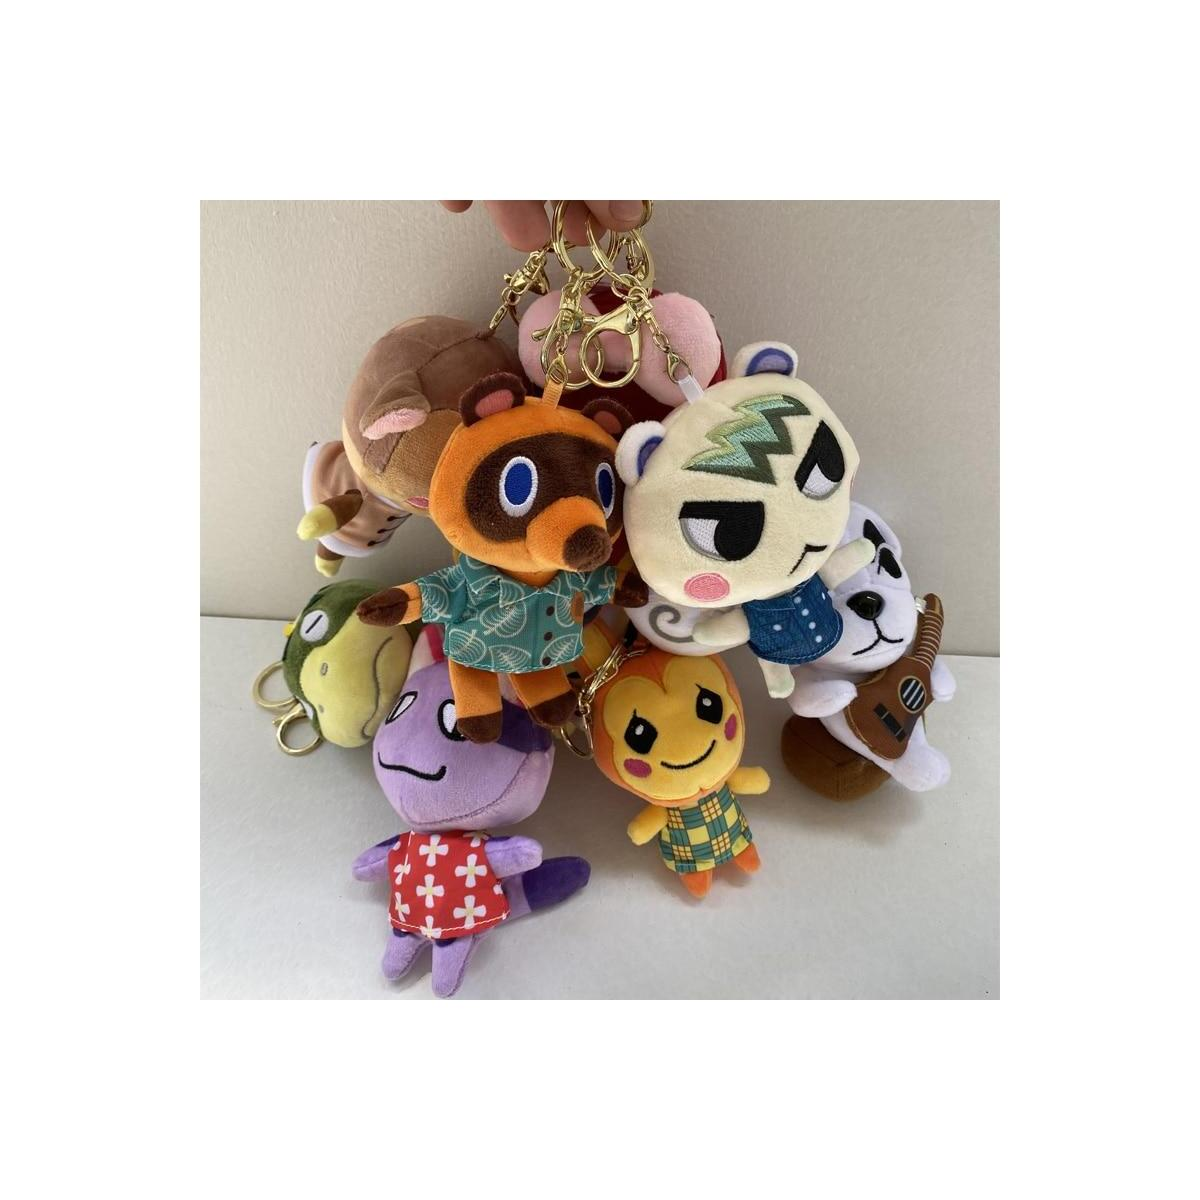 Animal Crossing Plush Villager Keychains, 12cm-Isabelle